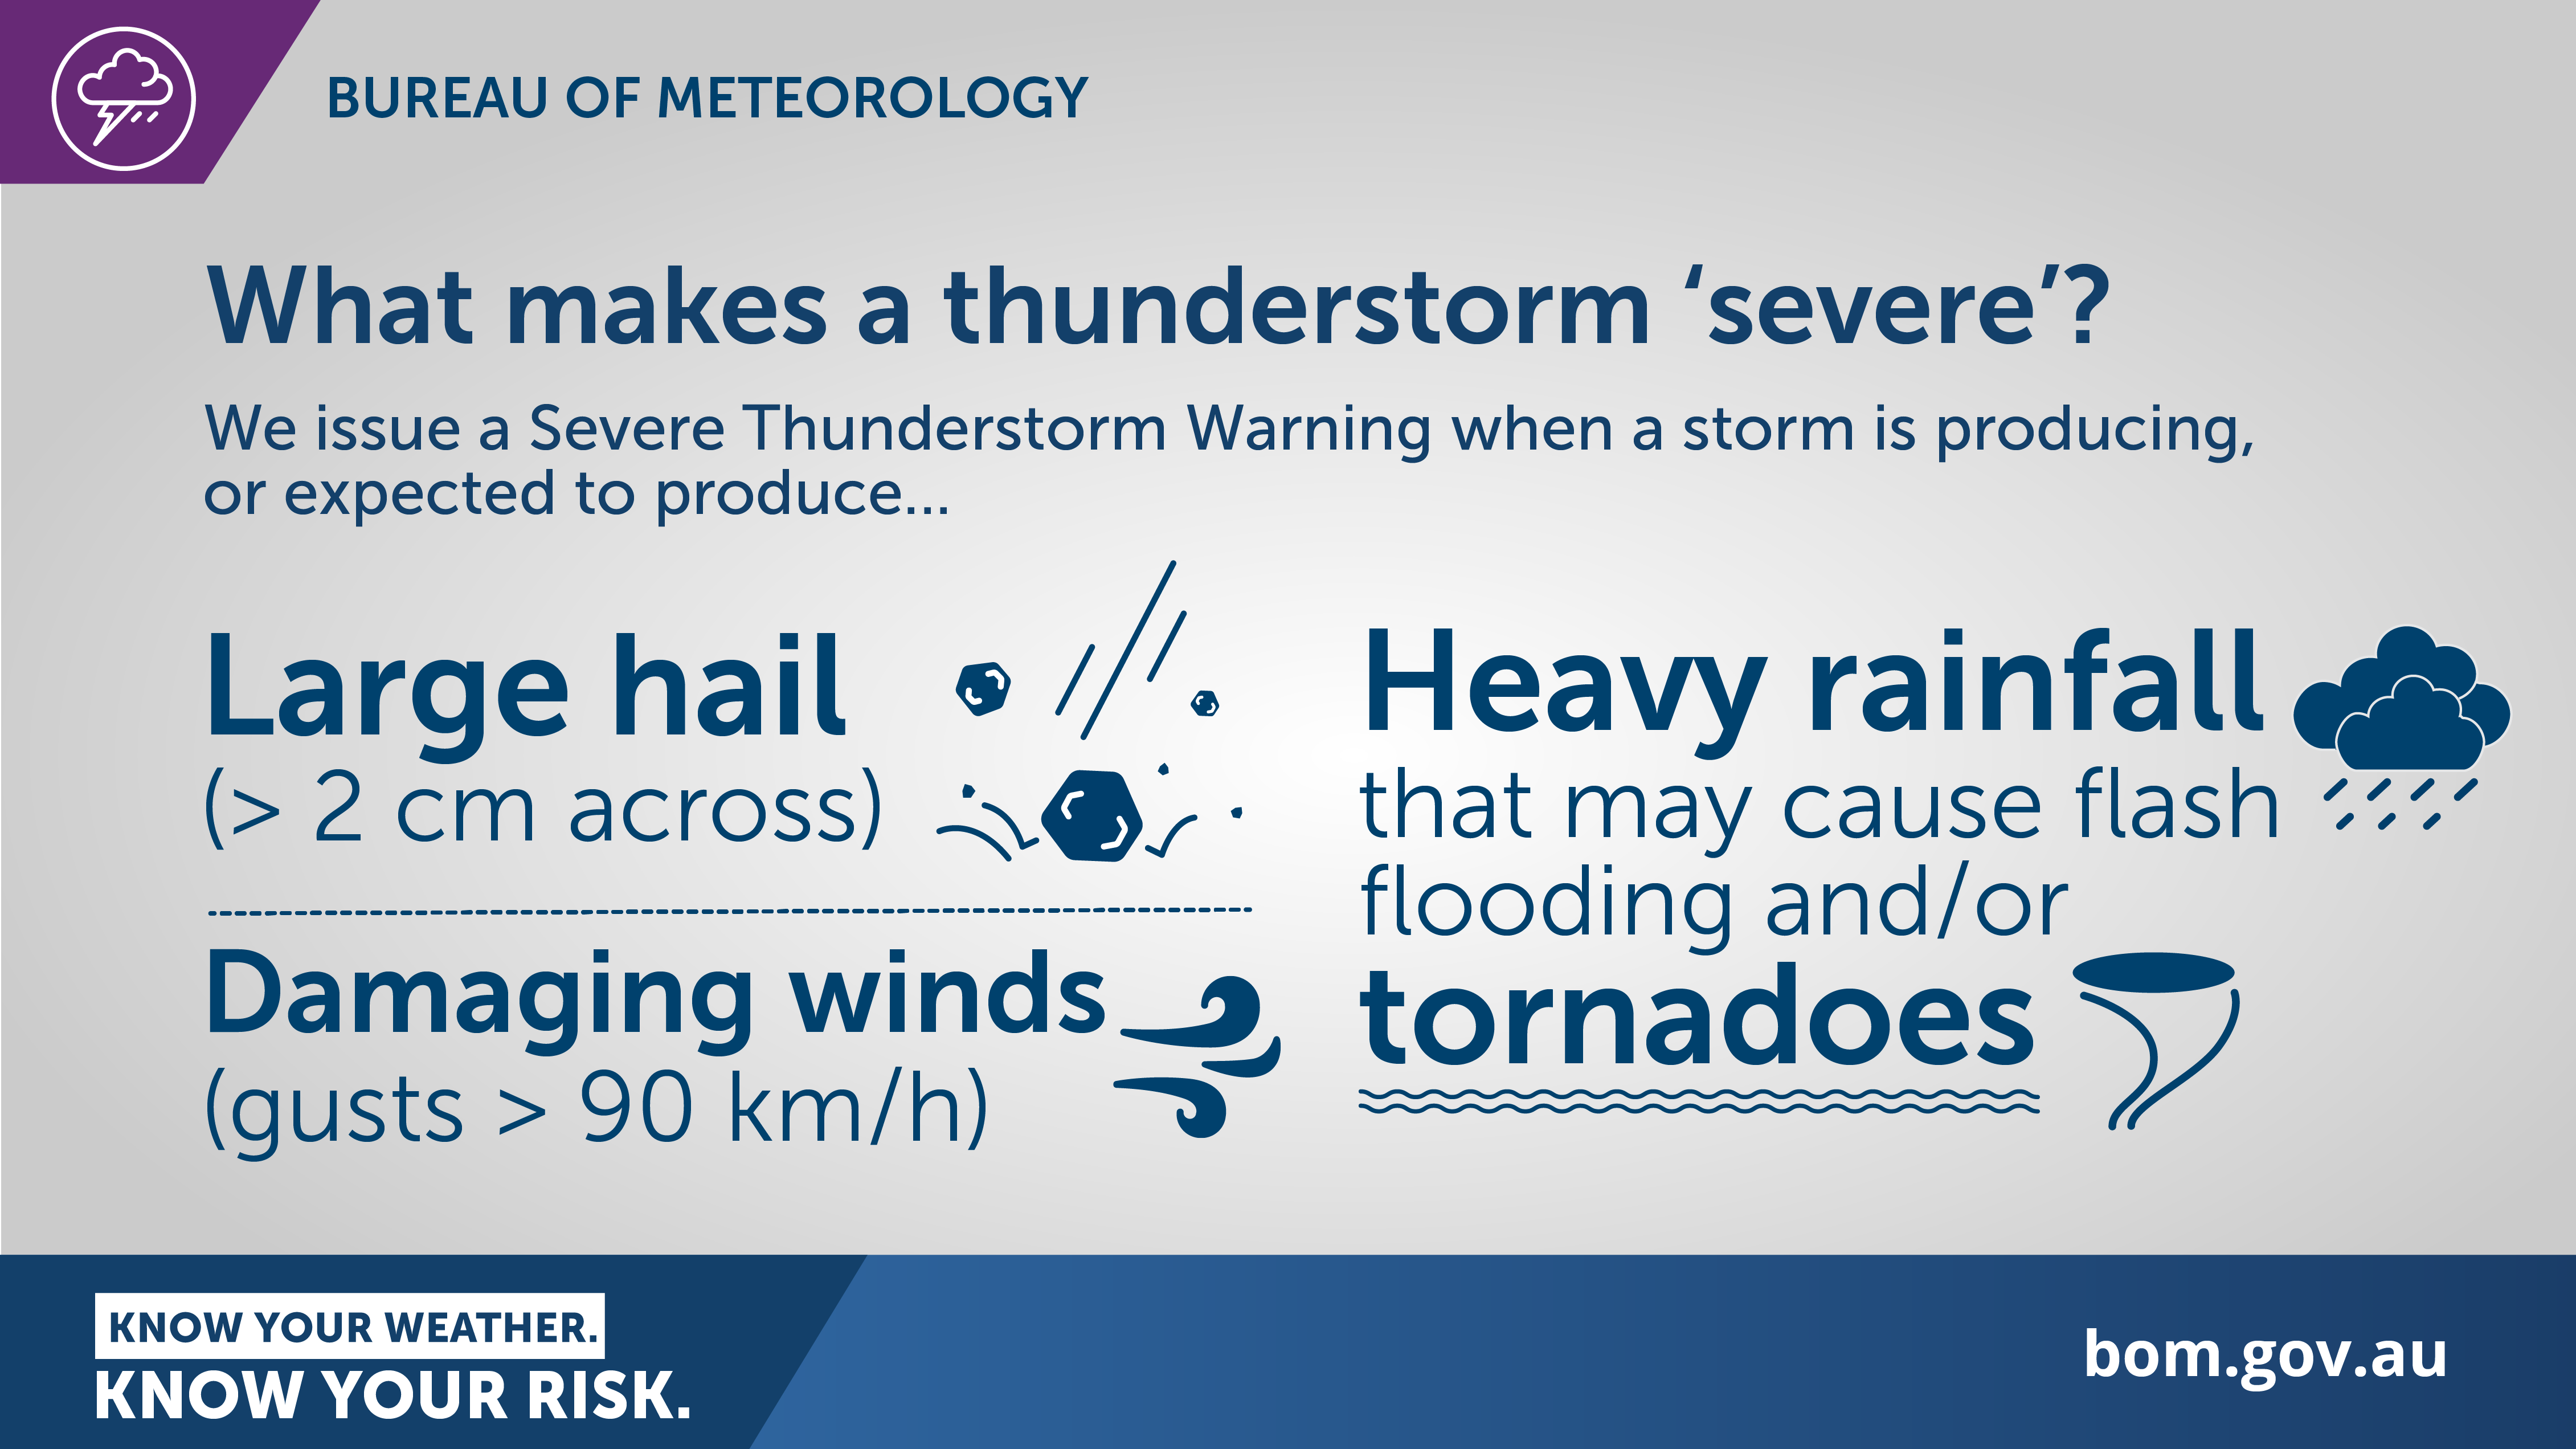 What makes a thunderstorm 'severe'?